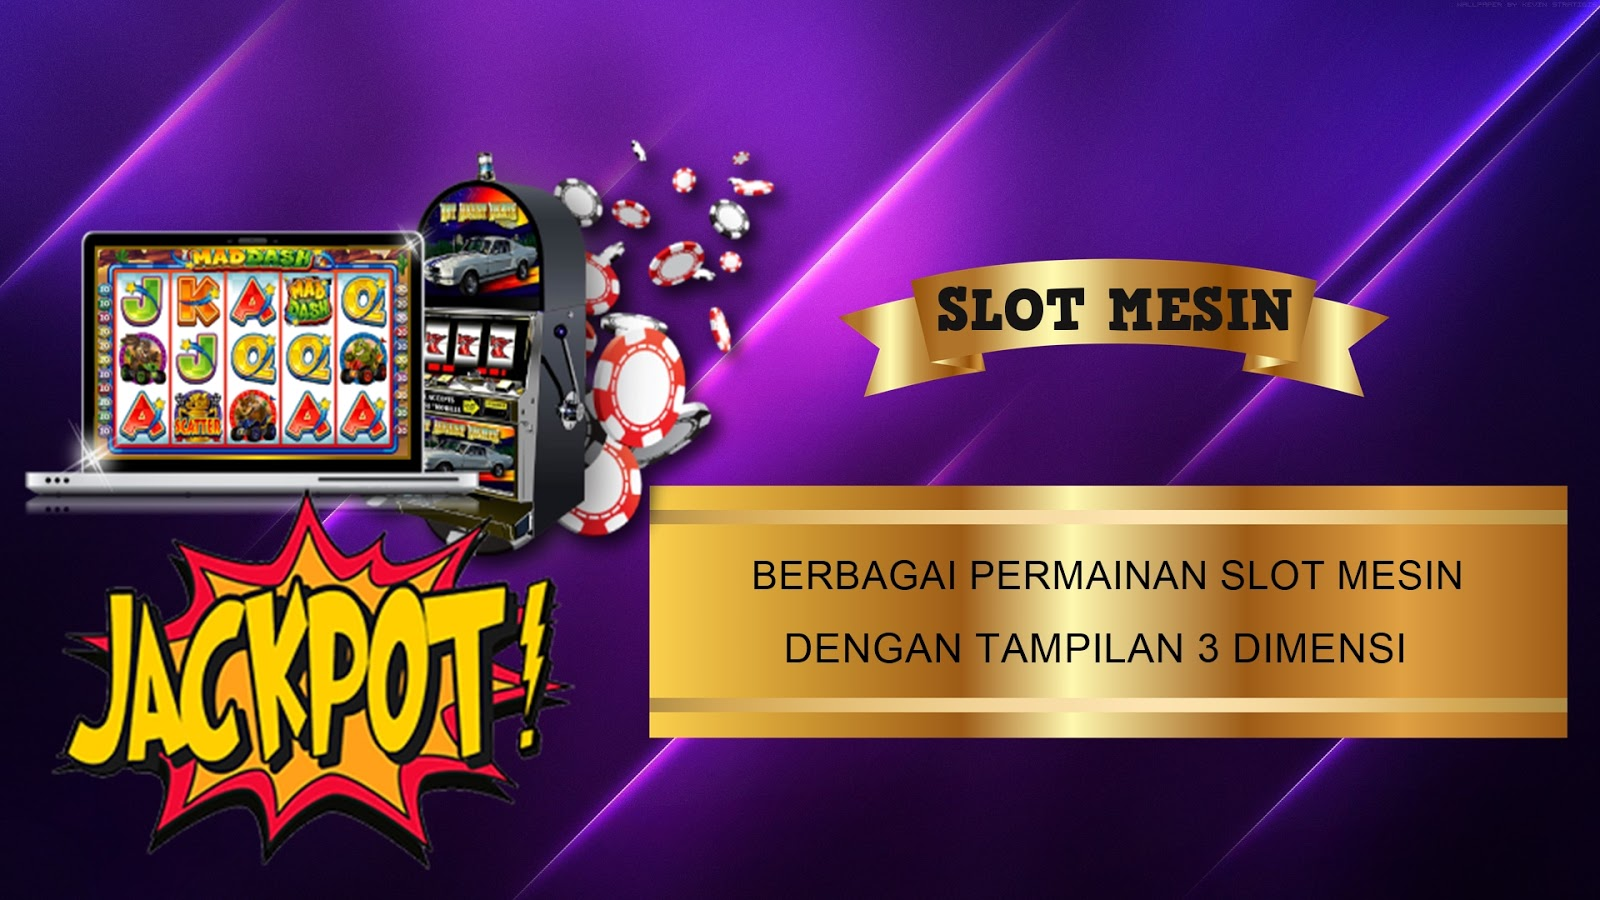 SLOT MESIN